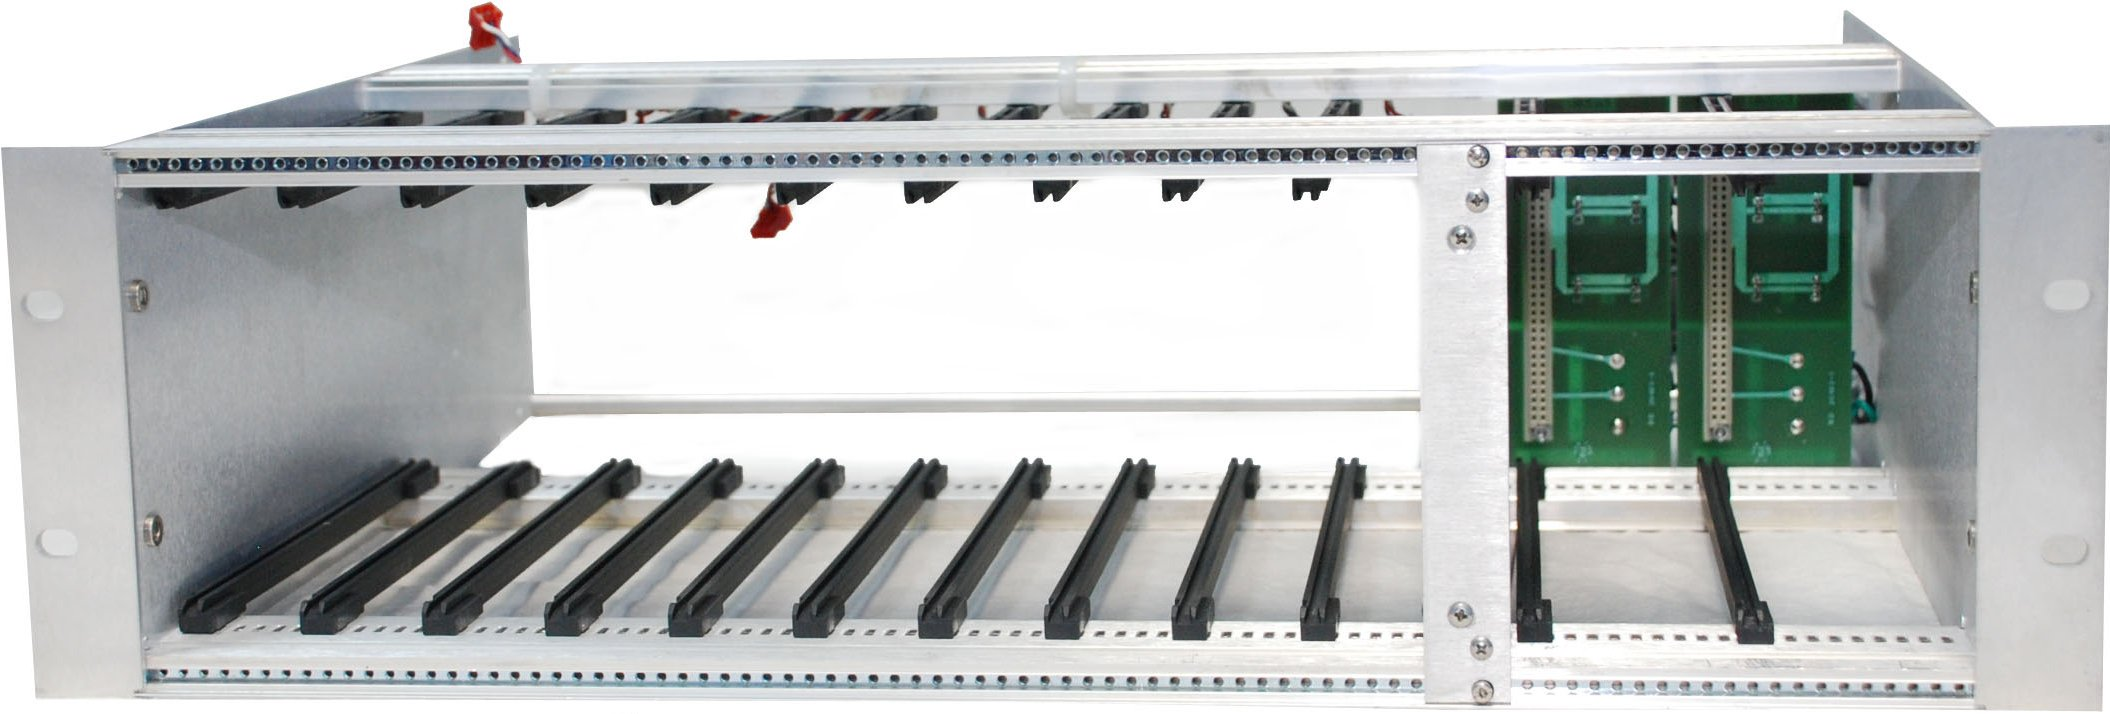 Rack Frame for System 10K, holds 10 Modules and 2 PS100 units, sold separately